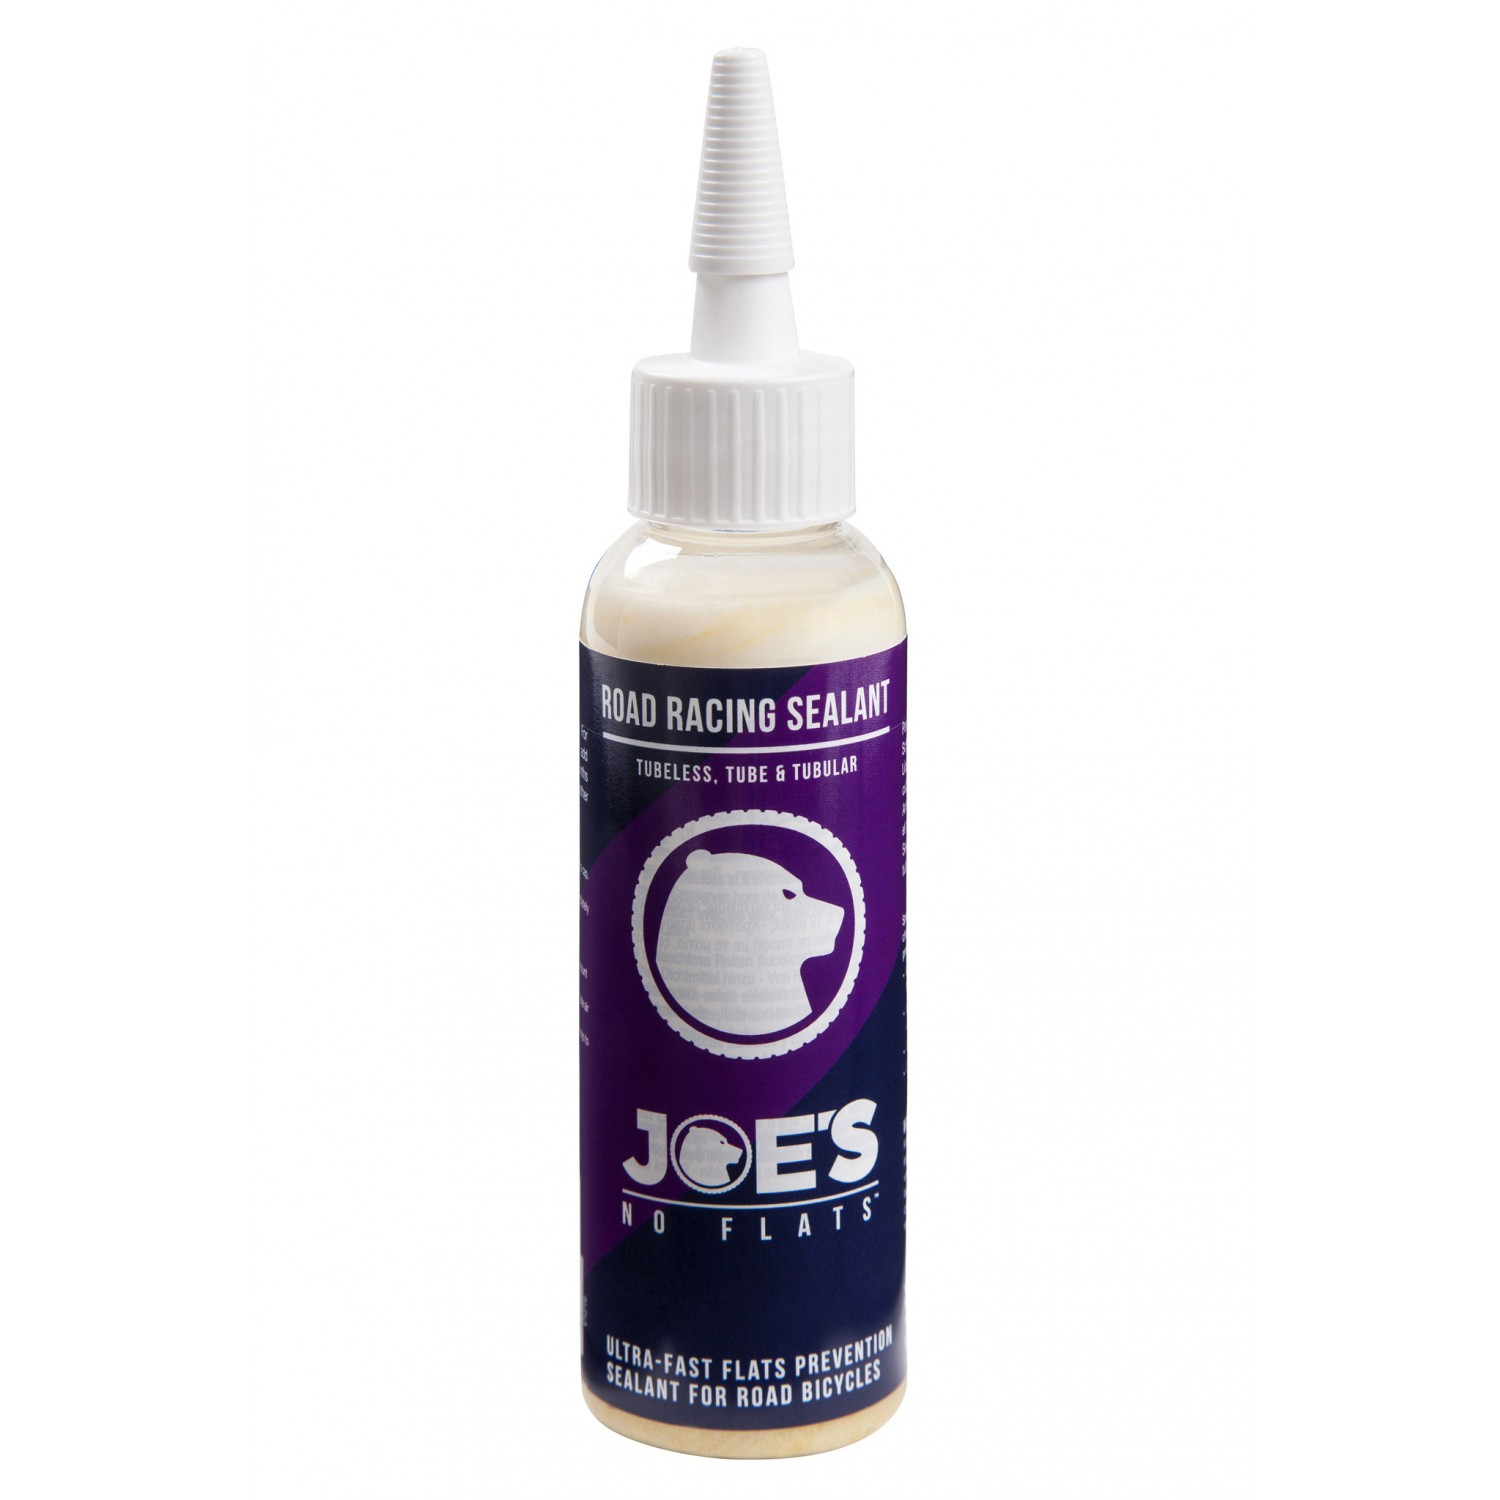 JOE'S NOFLAT | Road Racing Sealant – 125 ml / 4.2 oz